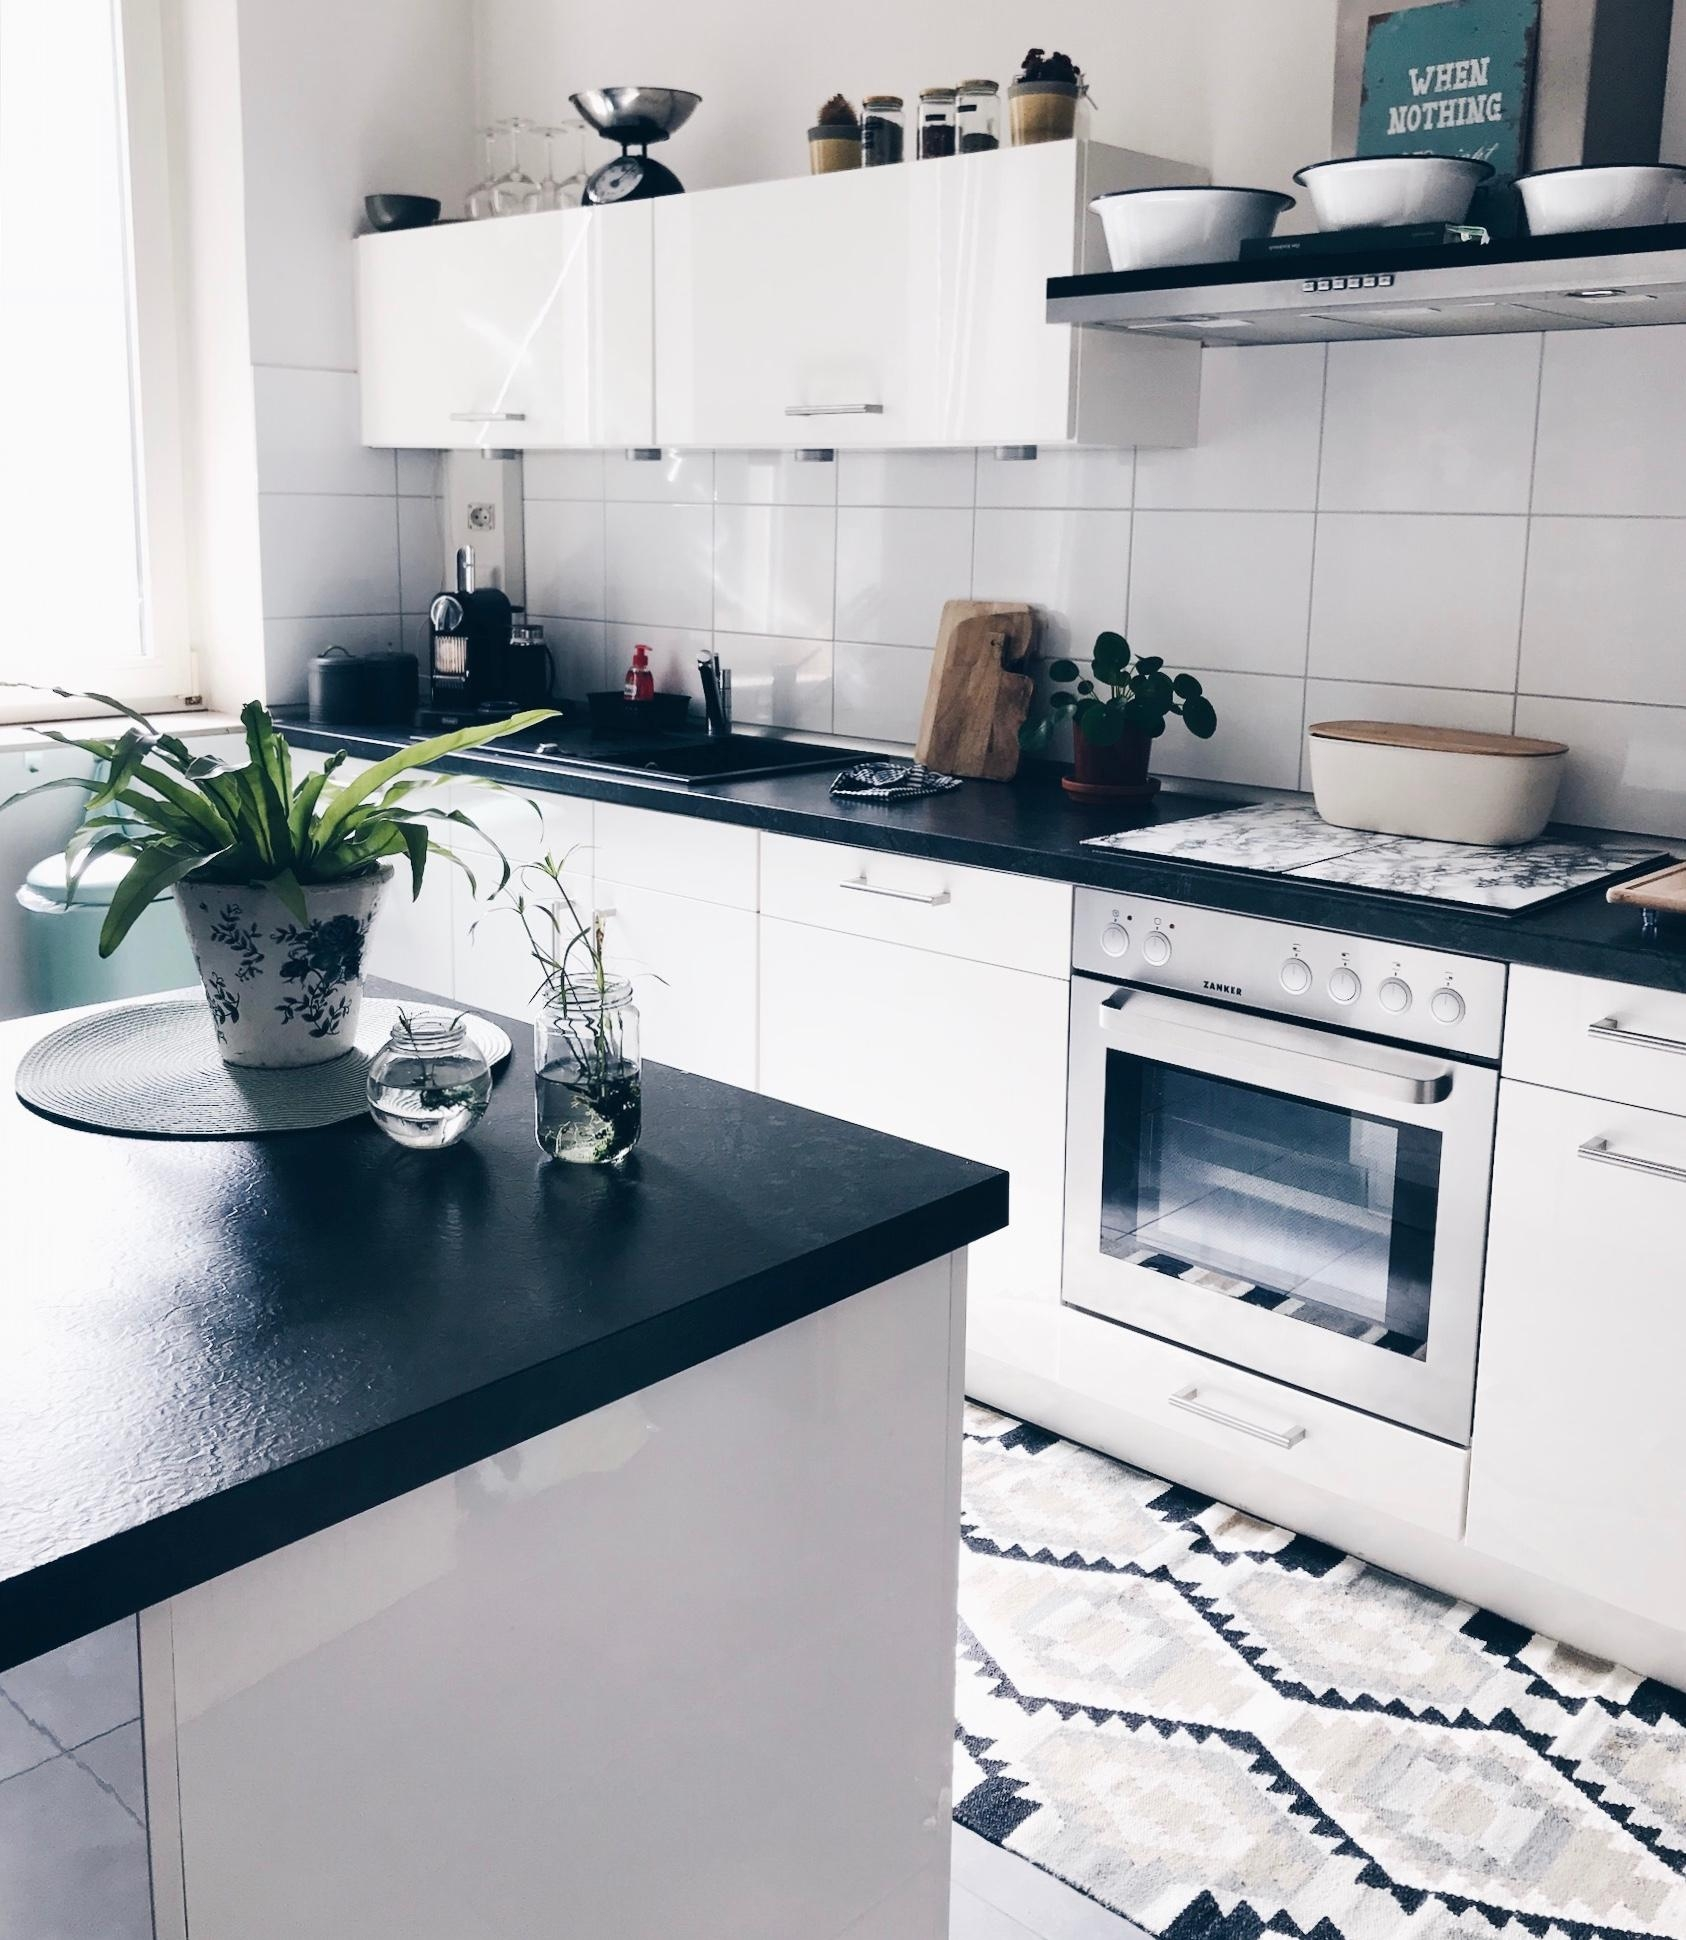 #kitchenlove #kitchen #home #interior #Couchliebt #Couchstyle #küchentheke #Küche #scandi #nordic